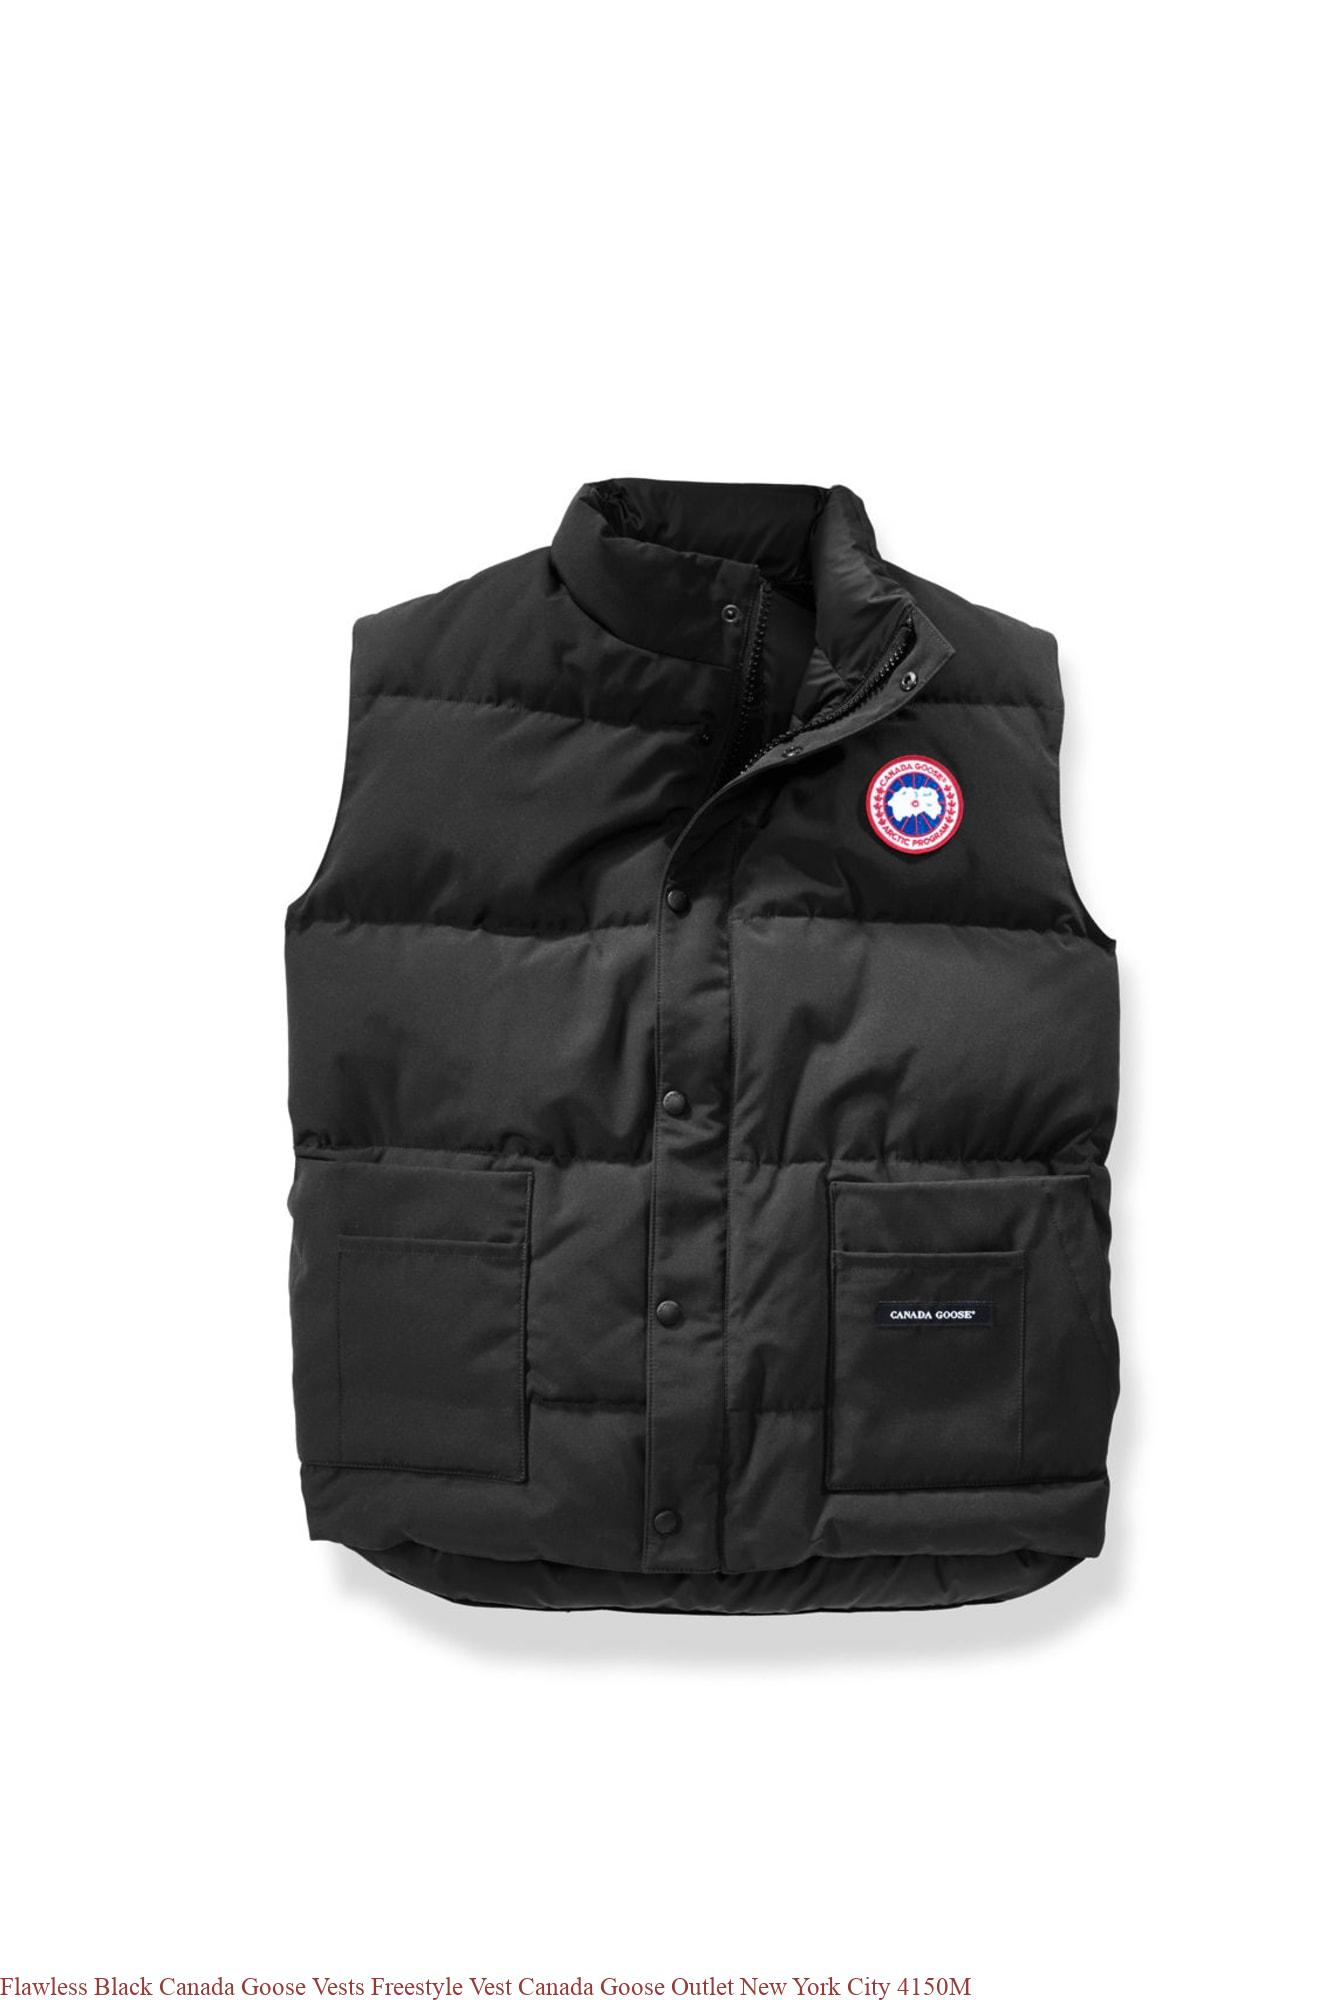 9c8f61fcdcc Flawless Black Canada Goose Vests Freestyle Vest Canada Goose Outlet New  York City 4150M